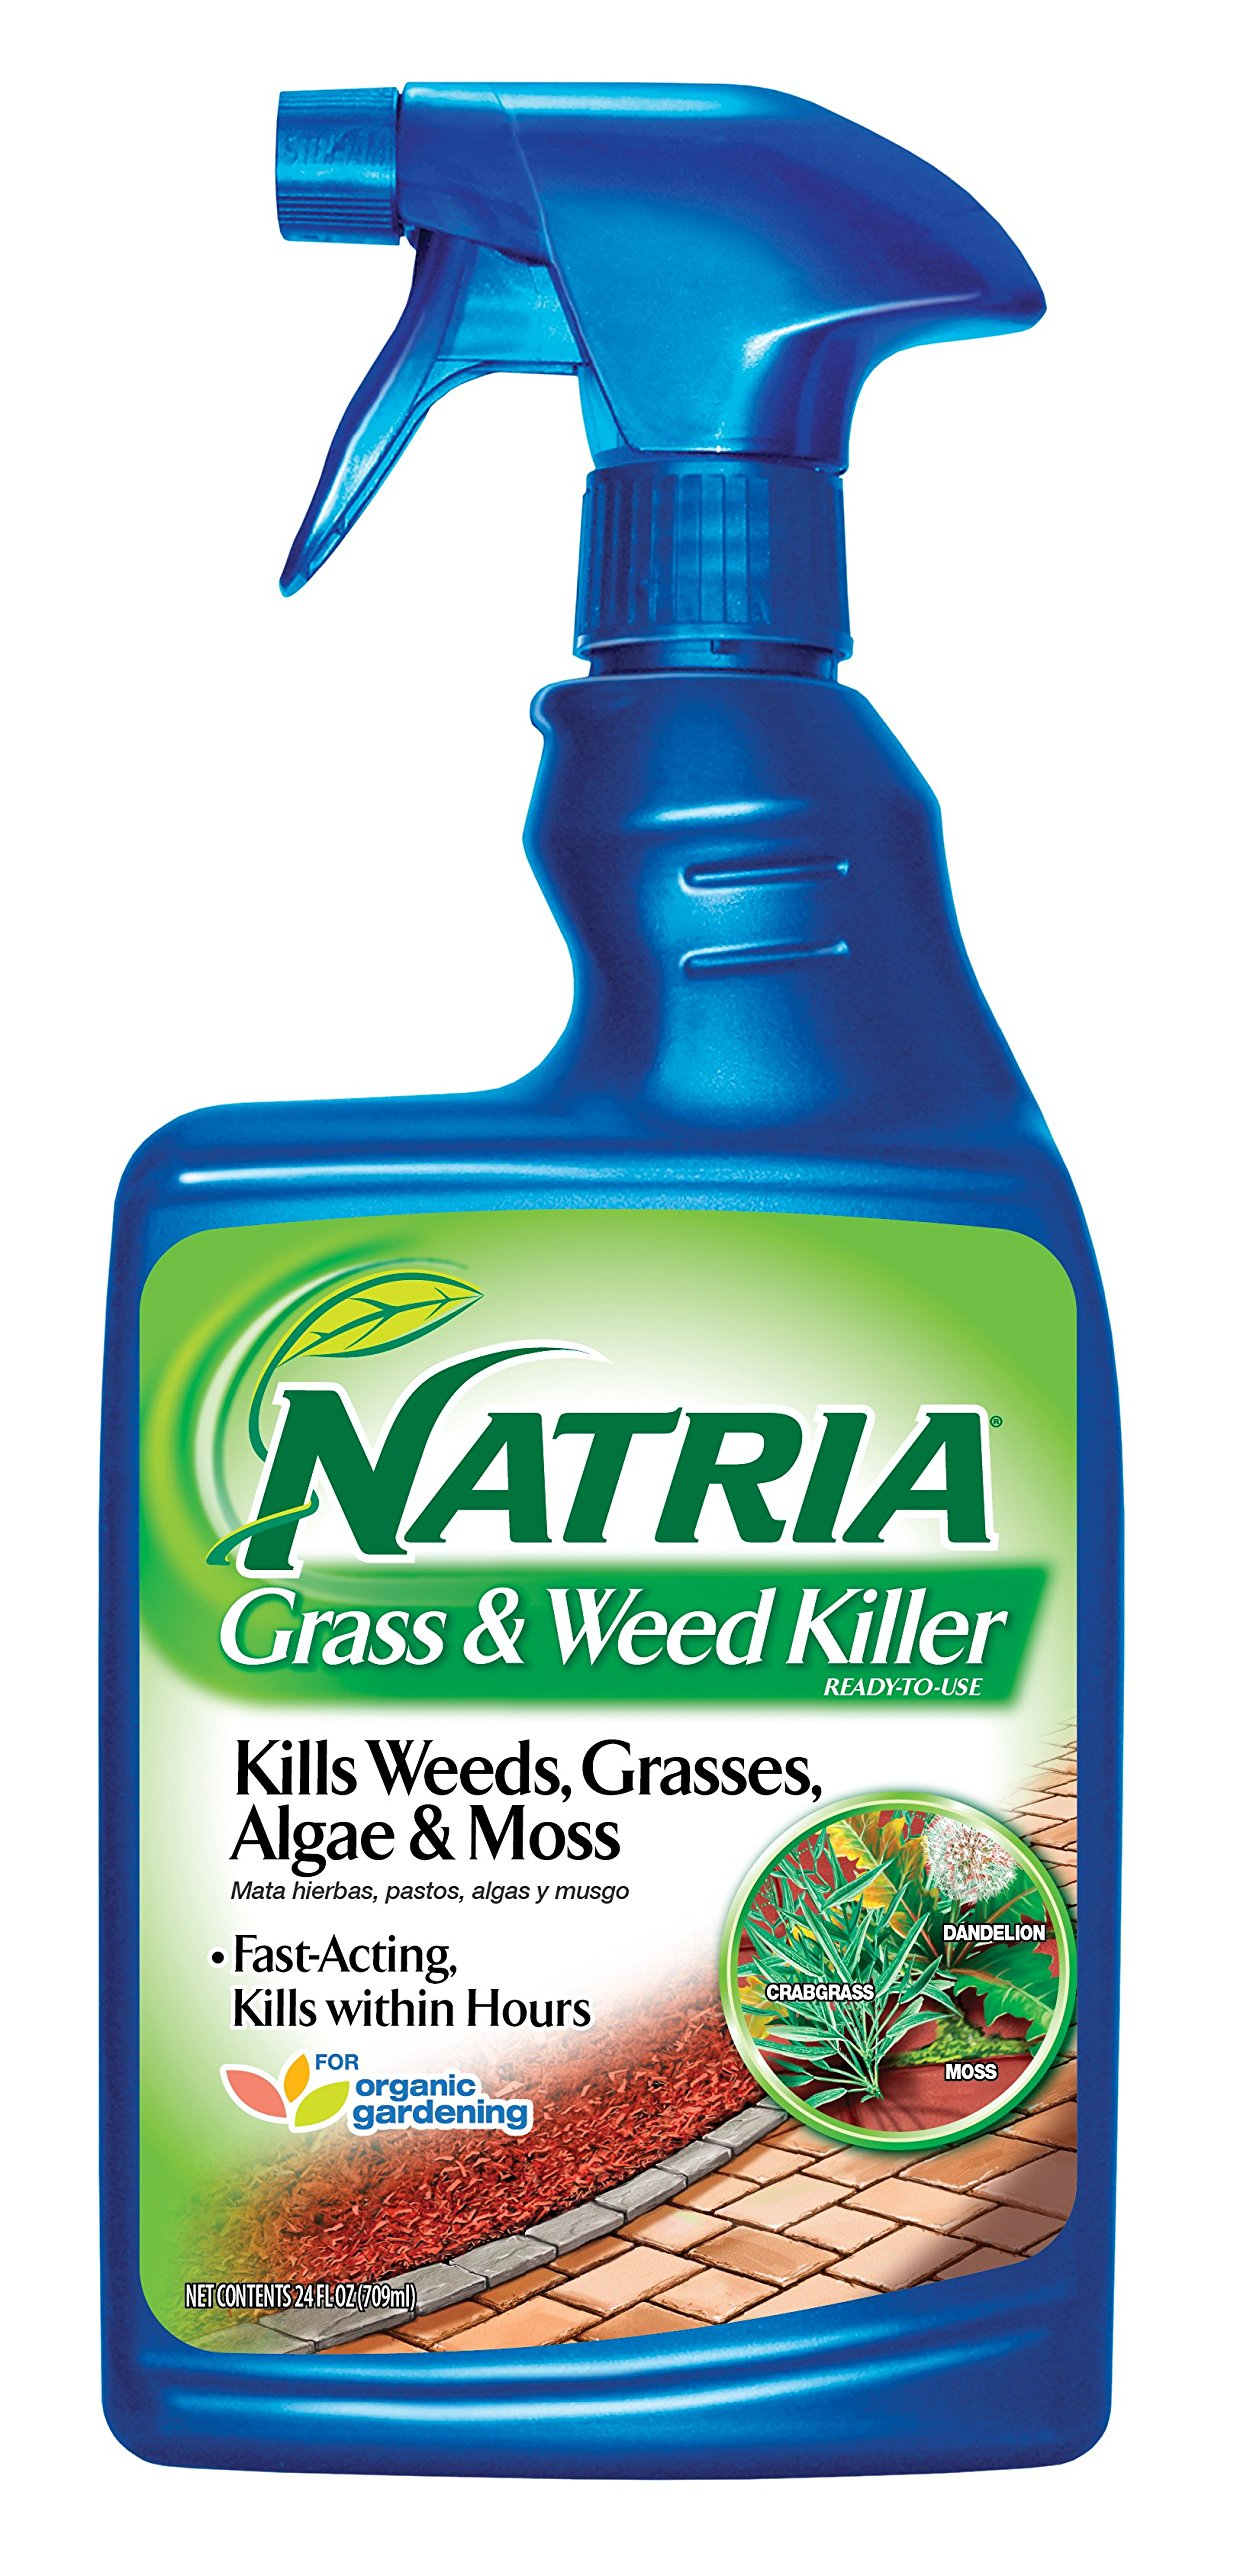 Bayer Advanced NATRIA 706170 Grass and Weed Killer Ready-To-Use, 24-Ounce